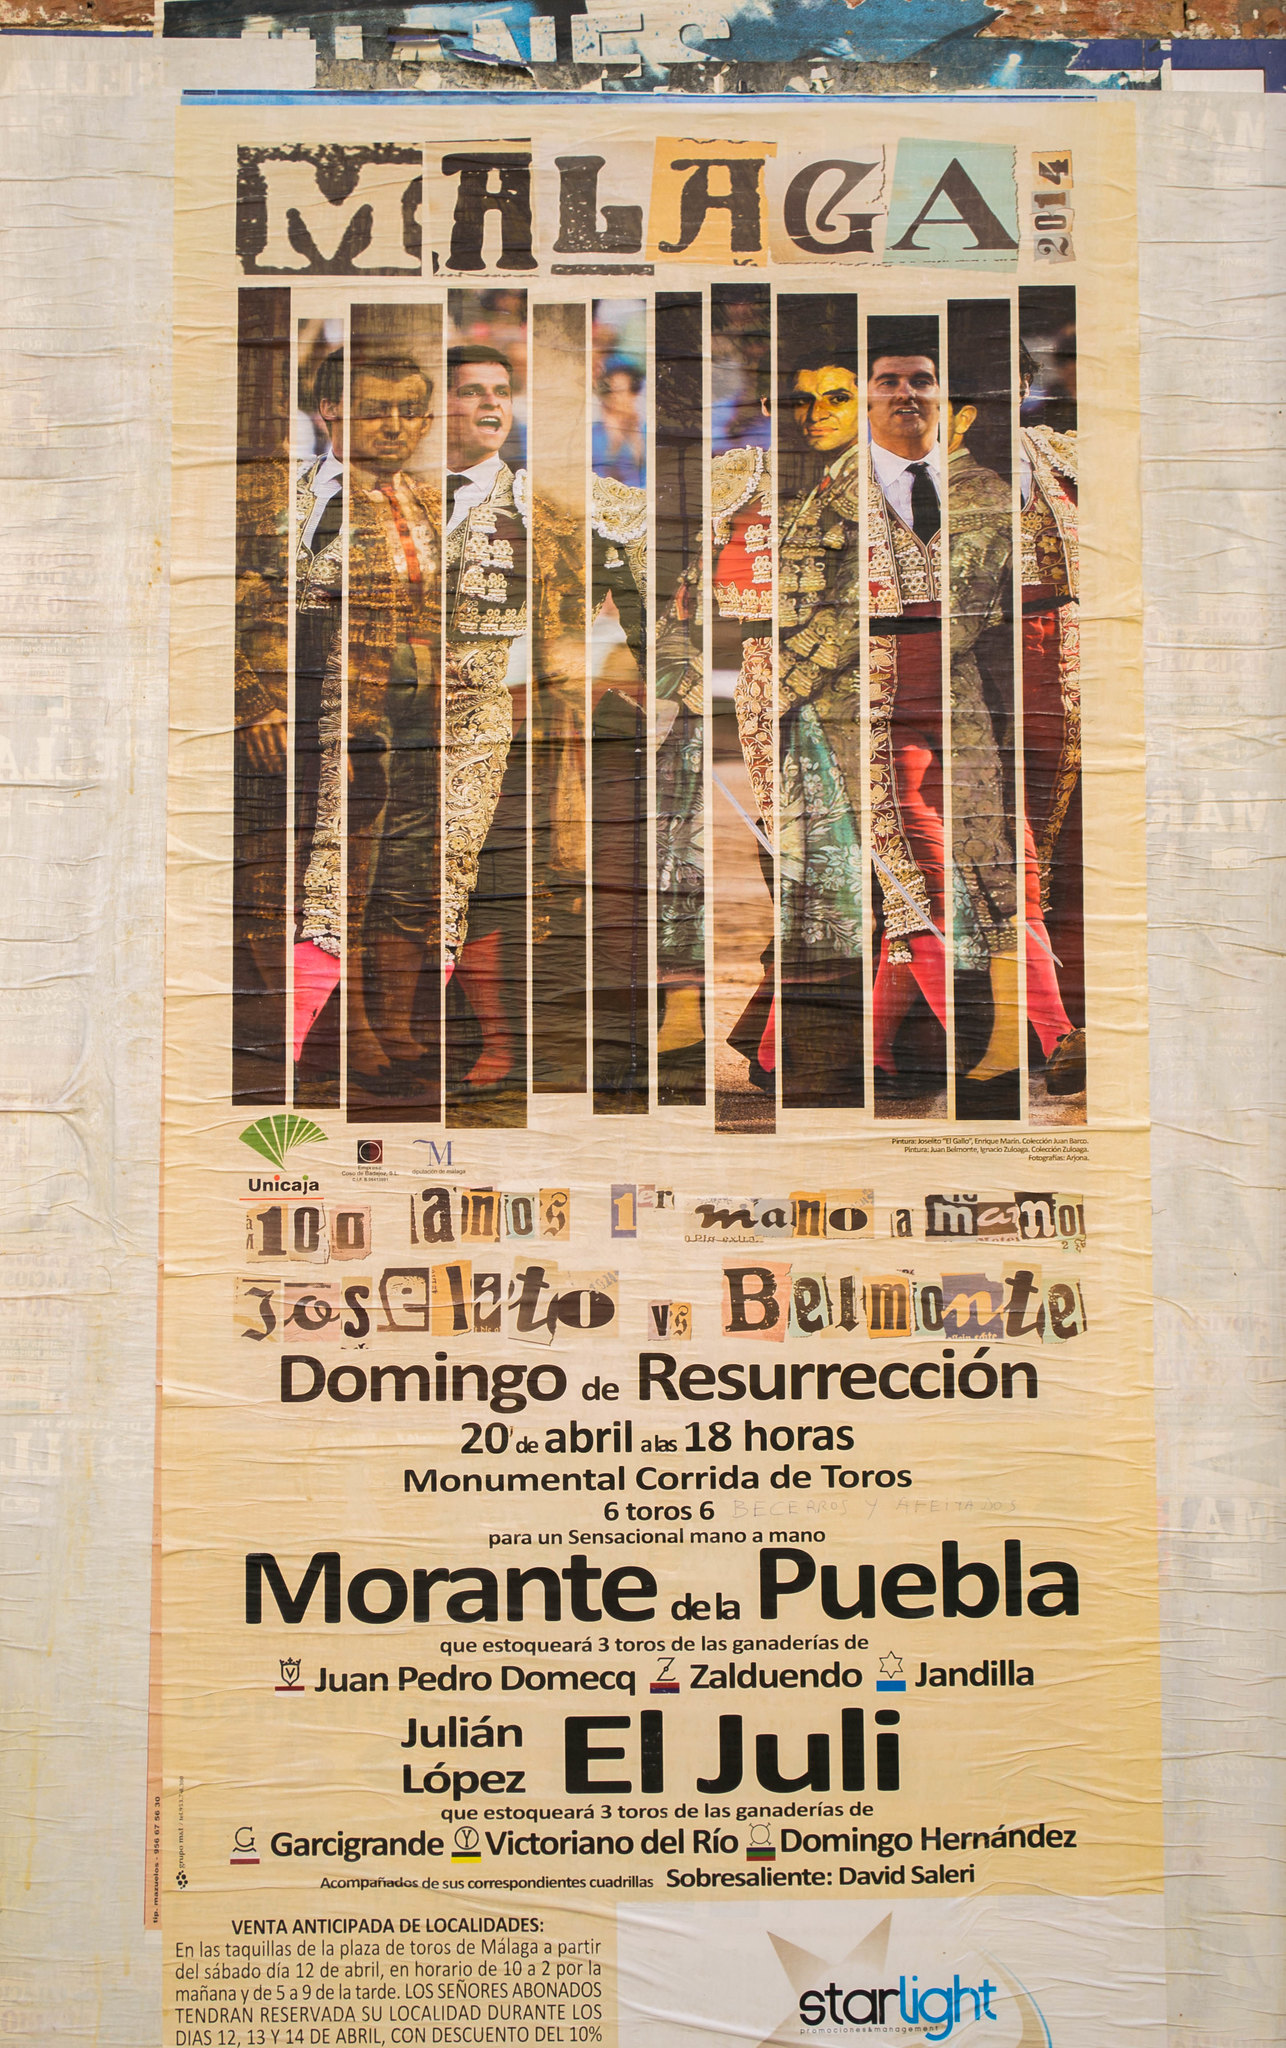 Poster on the Malaga Plaza de Torros